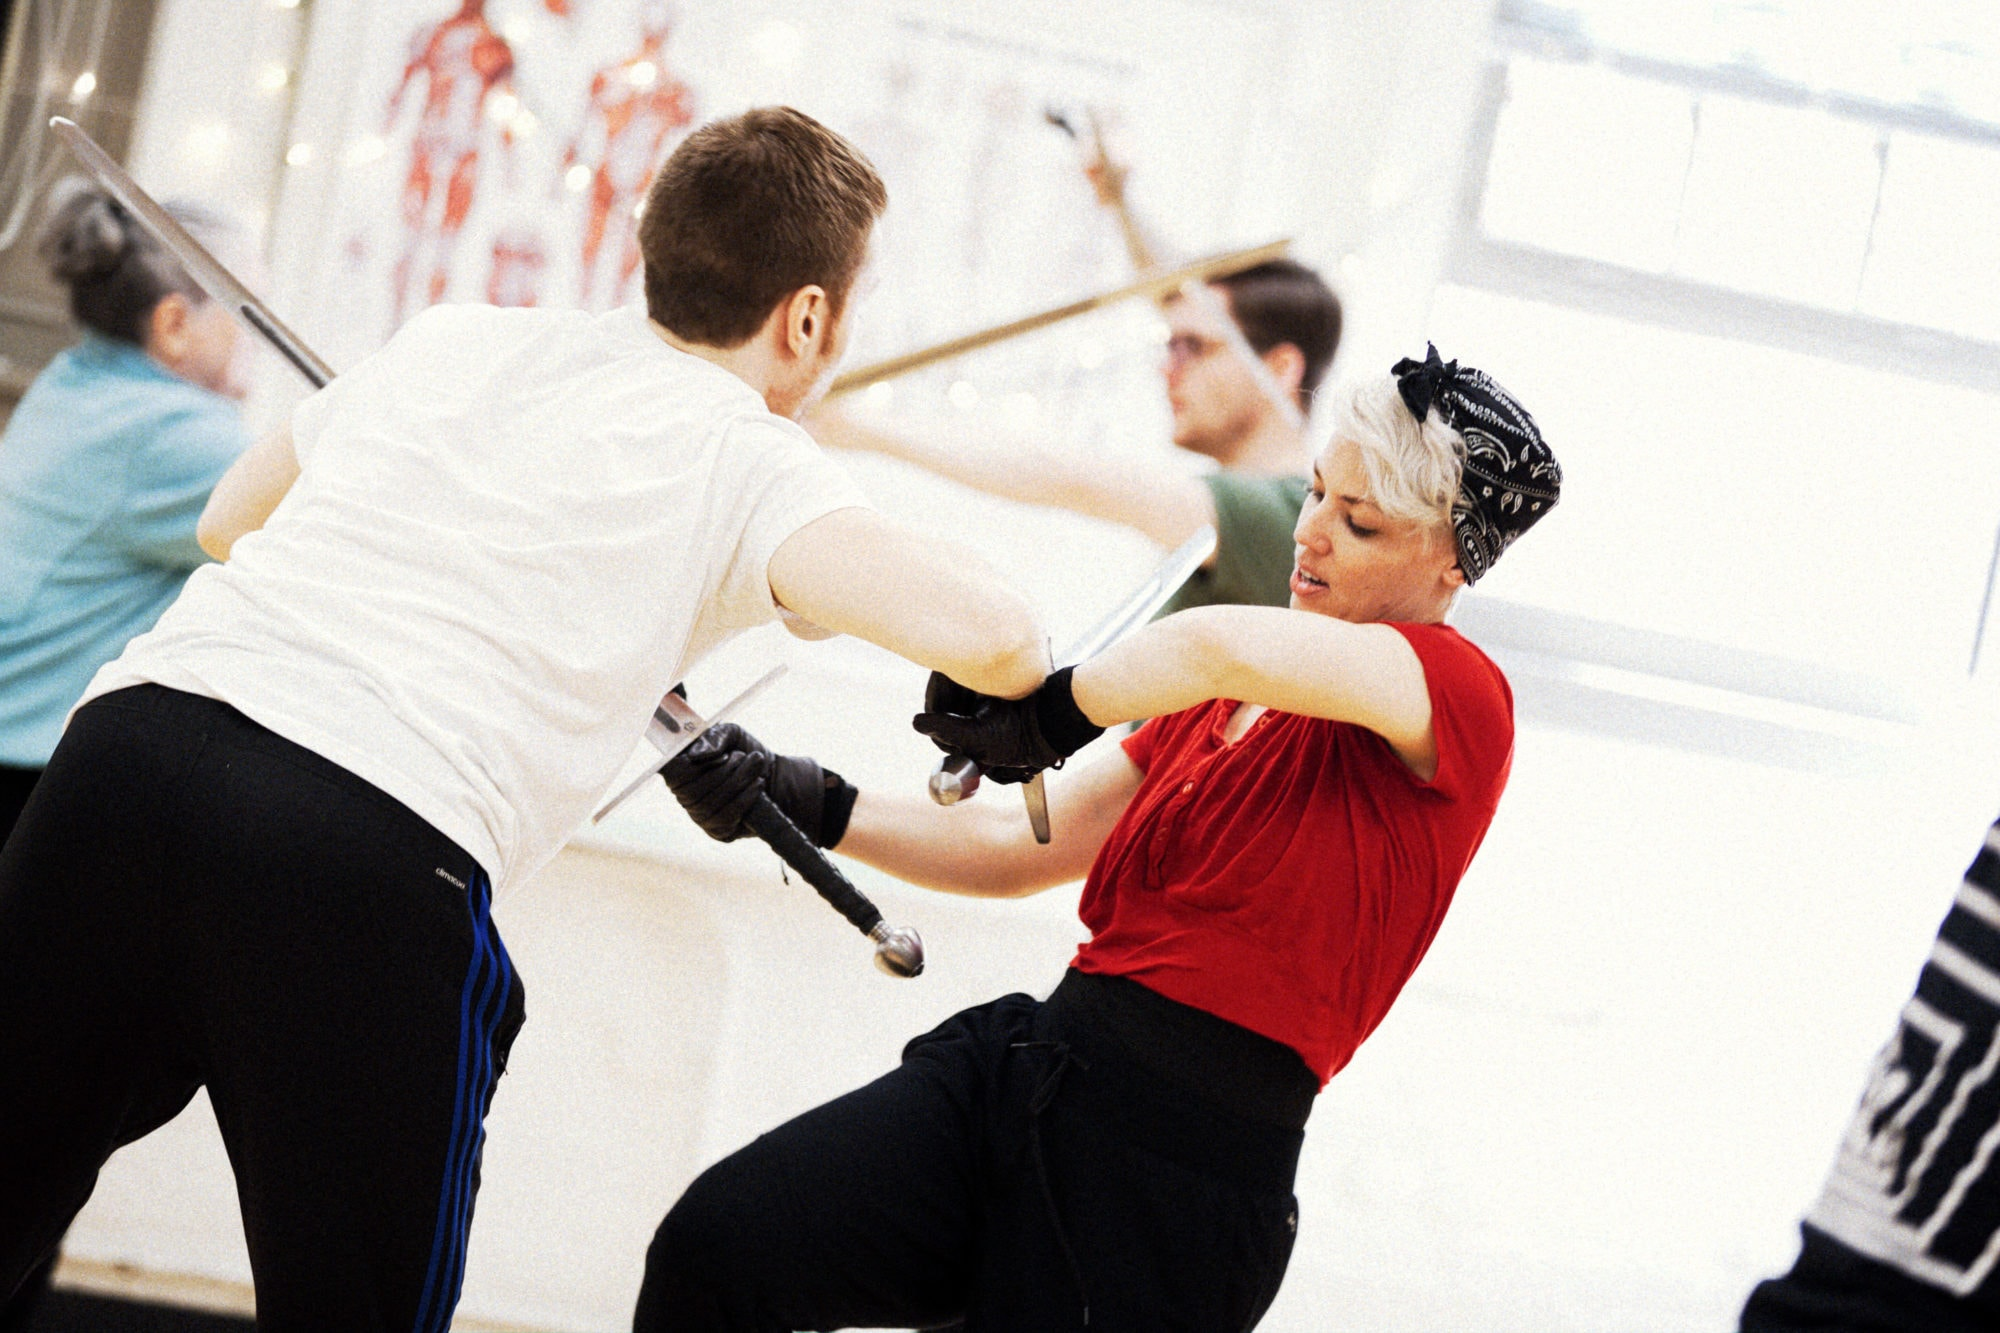 John Zoitos and Tro Shaw in combat class at the Shakespeare Theatre Company Academy for Classical Acting at the George Washington University. Photo courtesy of Shakespeare Theatre Company.